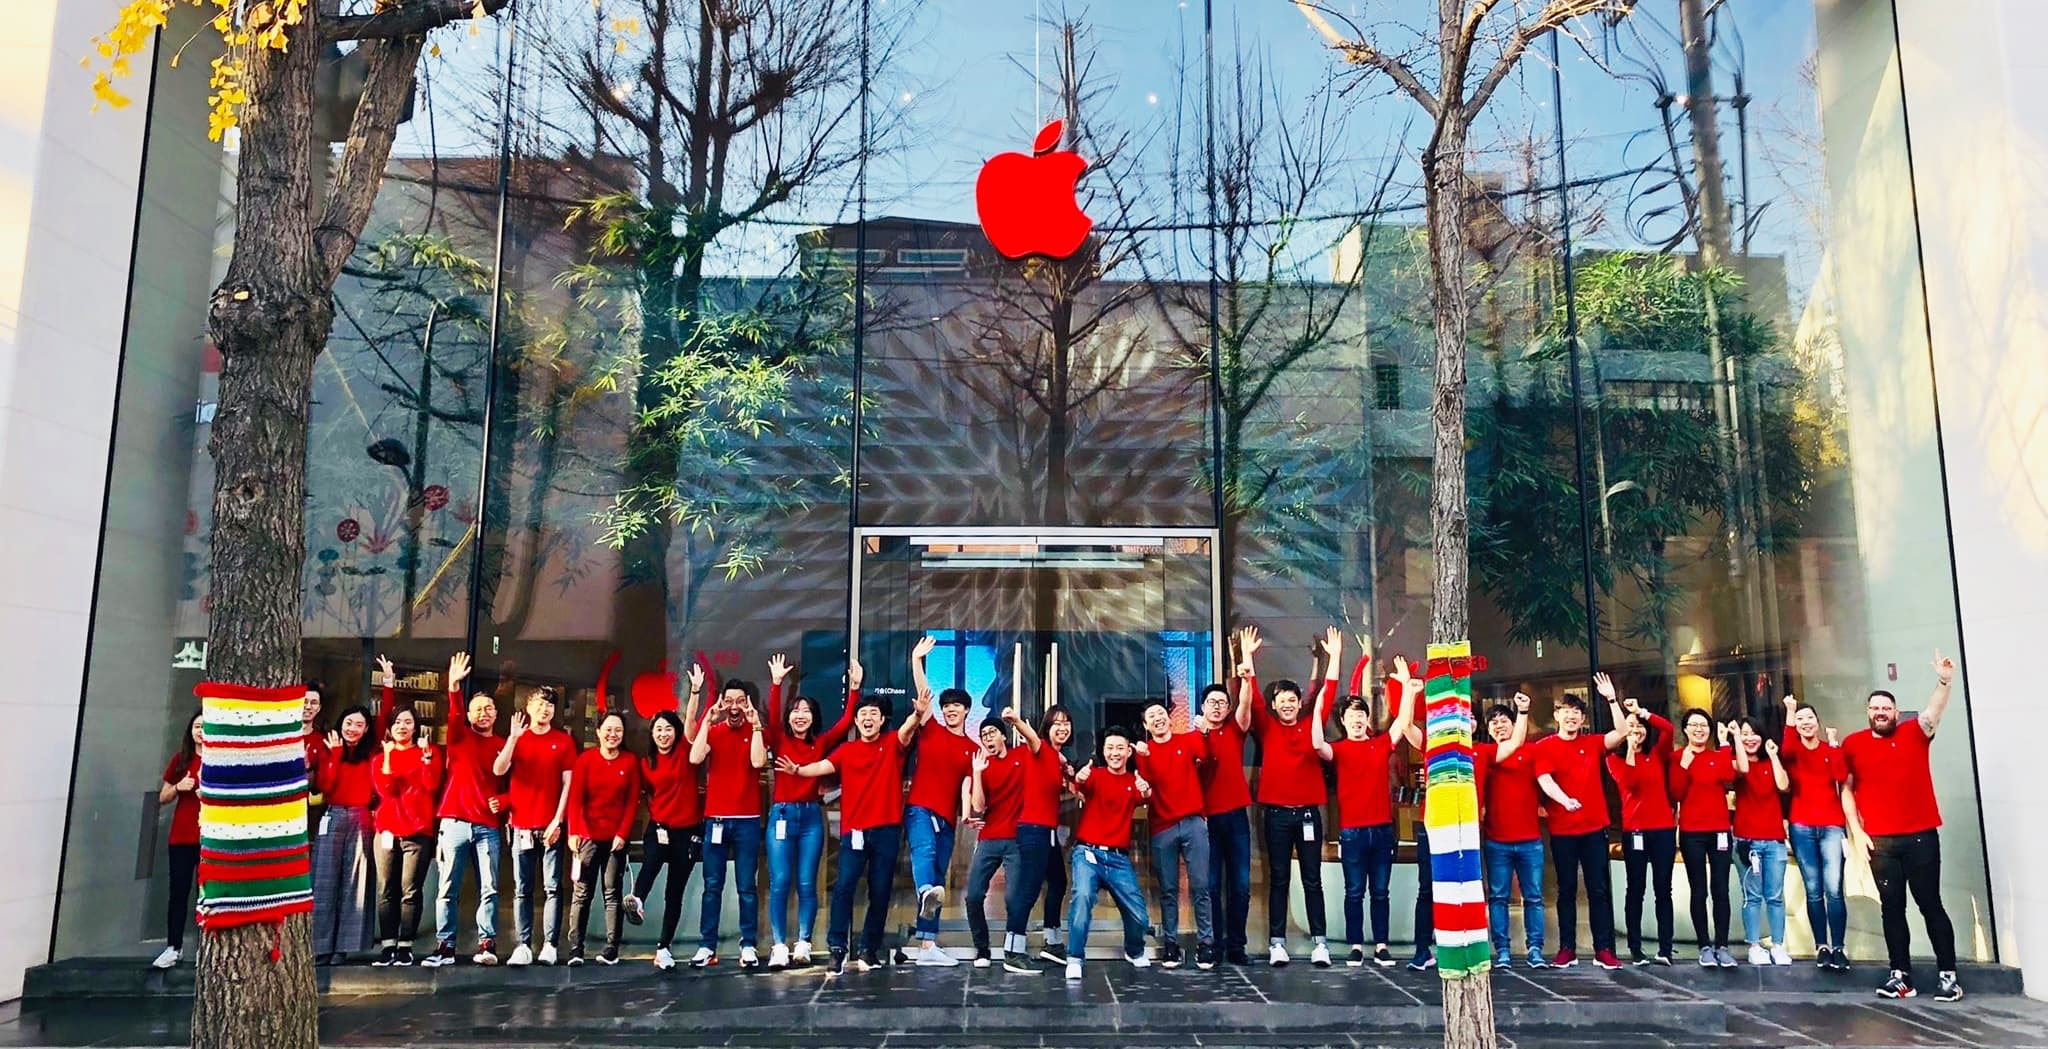 Apple calls attention to World AIDS Day with red logos in its retail stores.